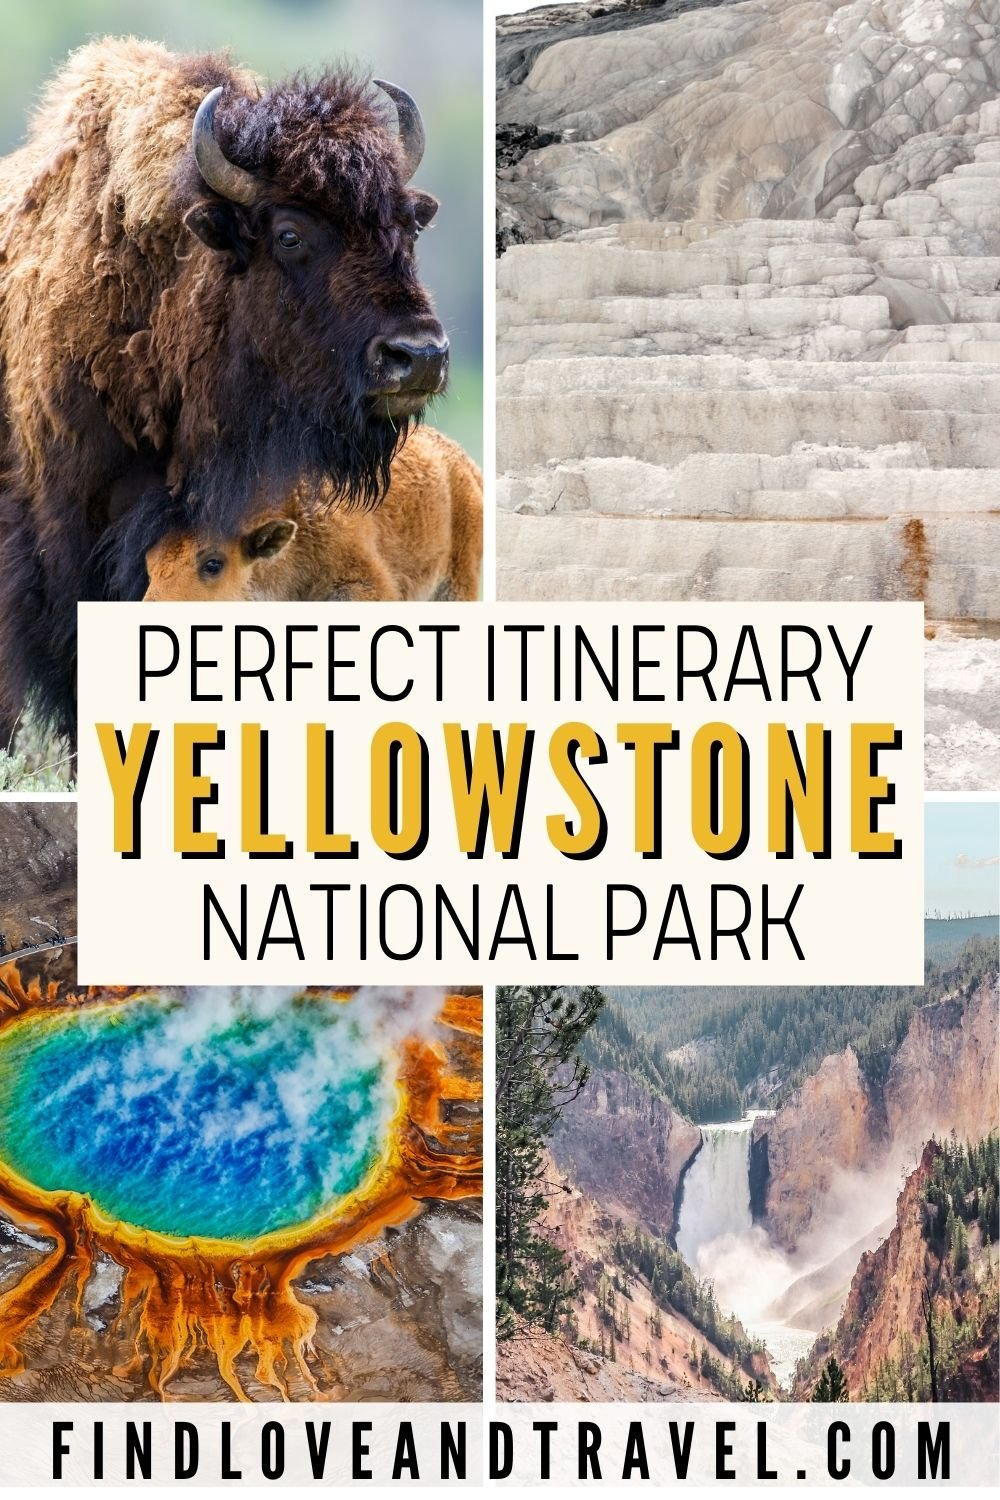 Yellowstone National Park itinerary in 2 days with Free Map included and travel tips.